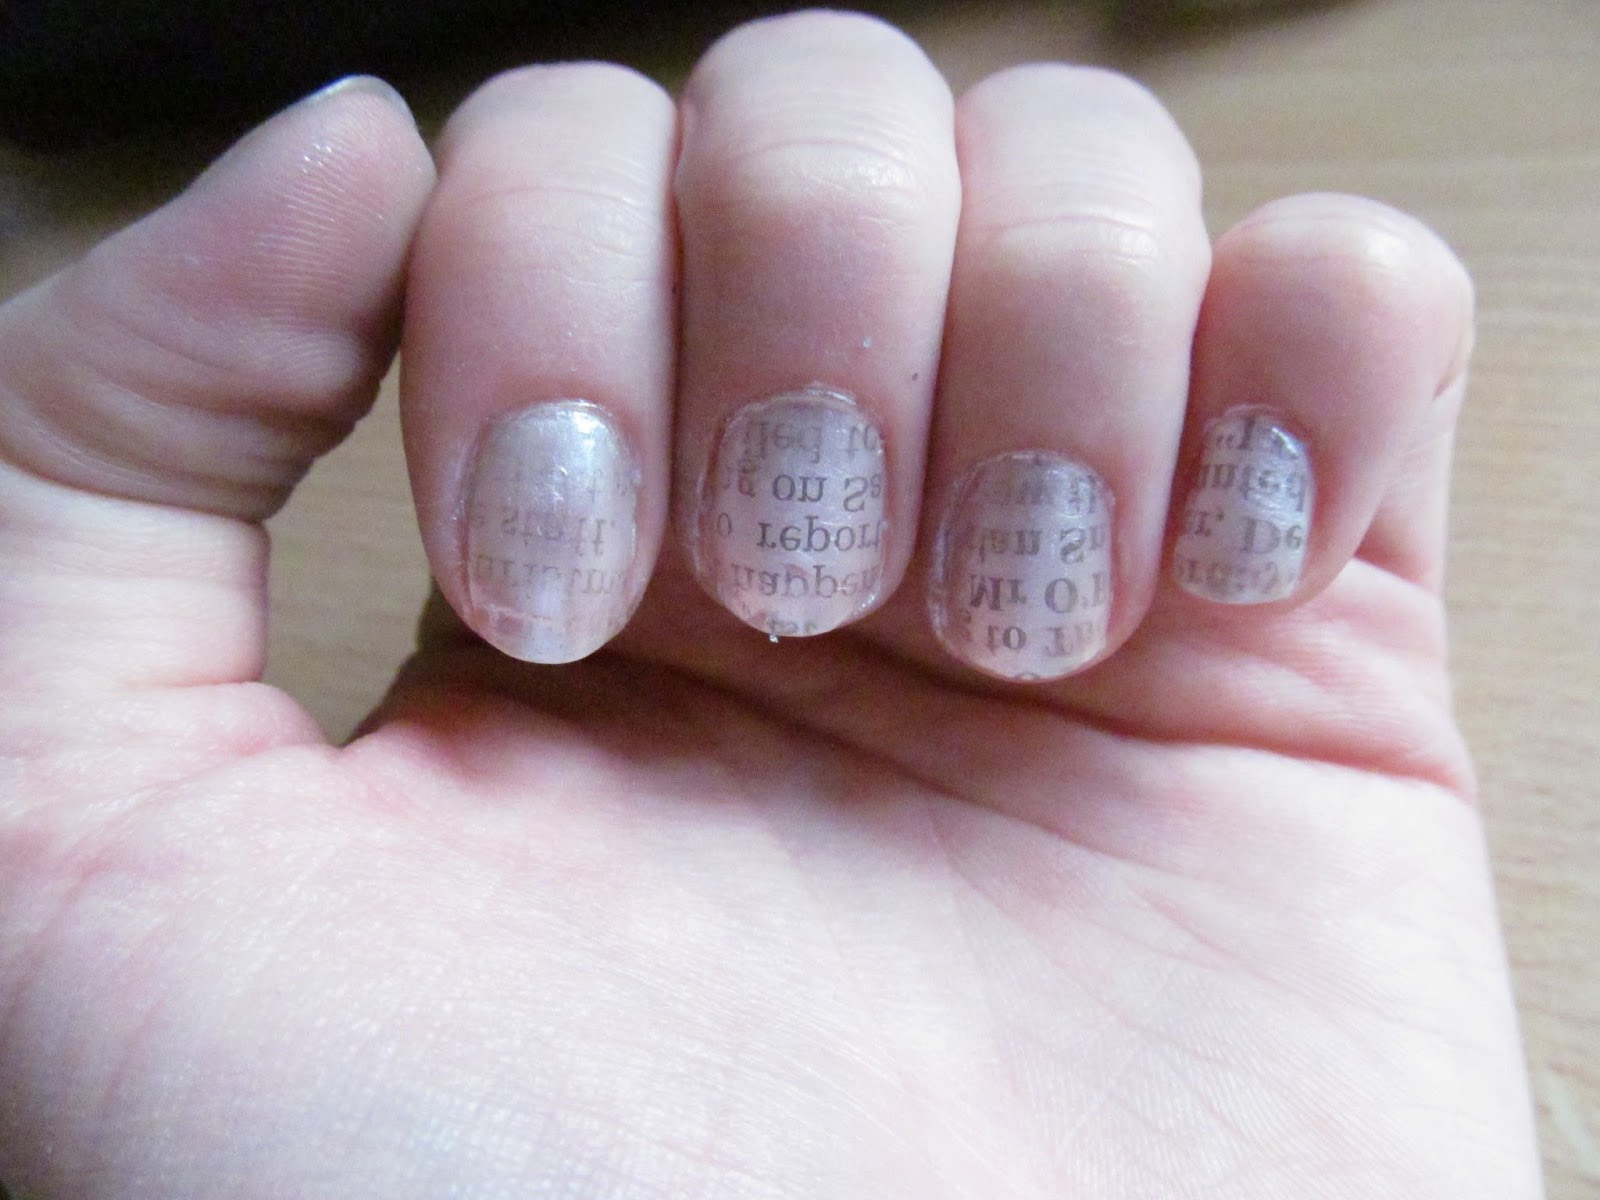 Emka\'s beauty bubble: Newspaper nail design tutorial